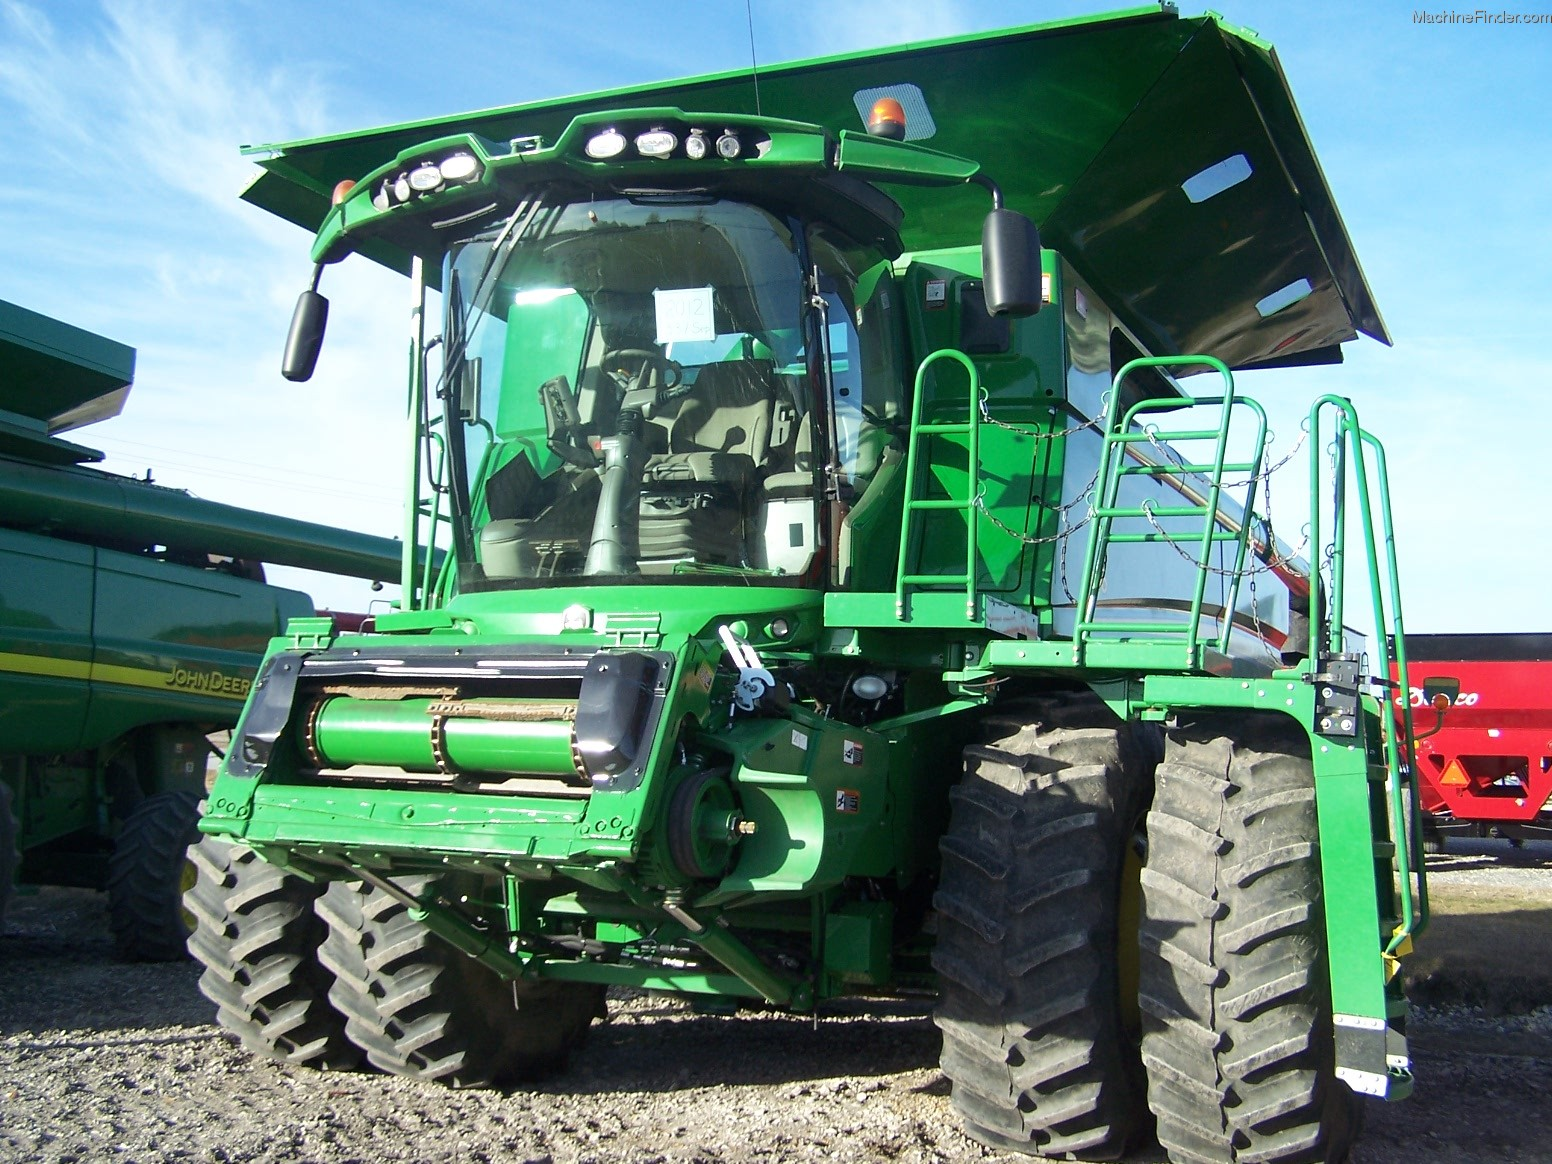 2012 John Deere S690 Combine http://www.machinefinder.com/ww/en-US/machine/2274942